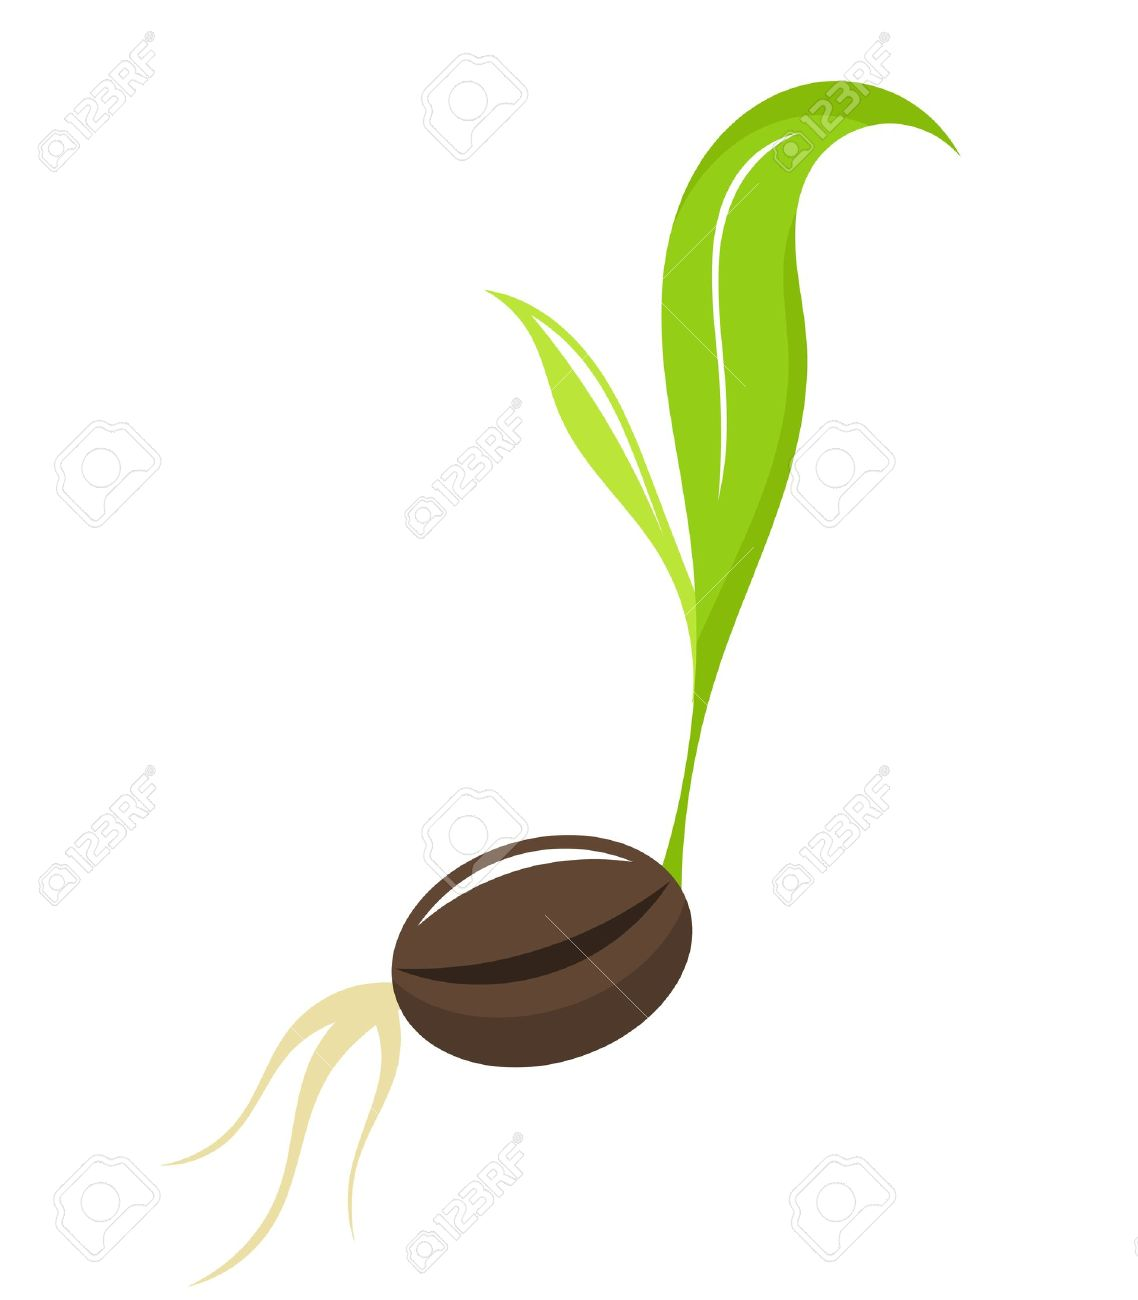 Seedling clipart little plant. Seed planting cliparts free